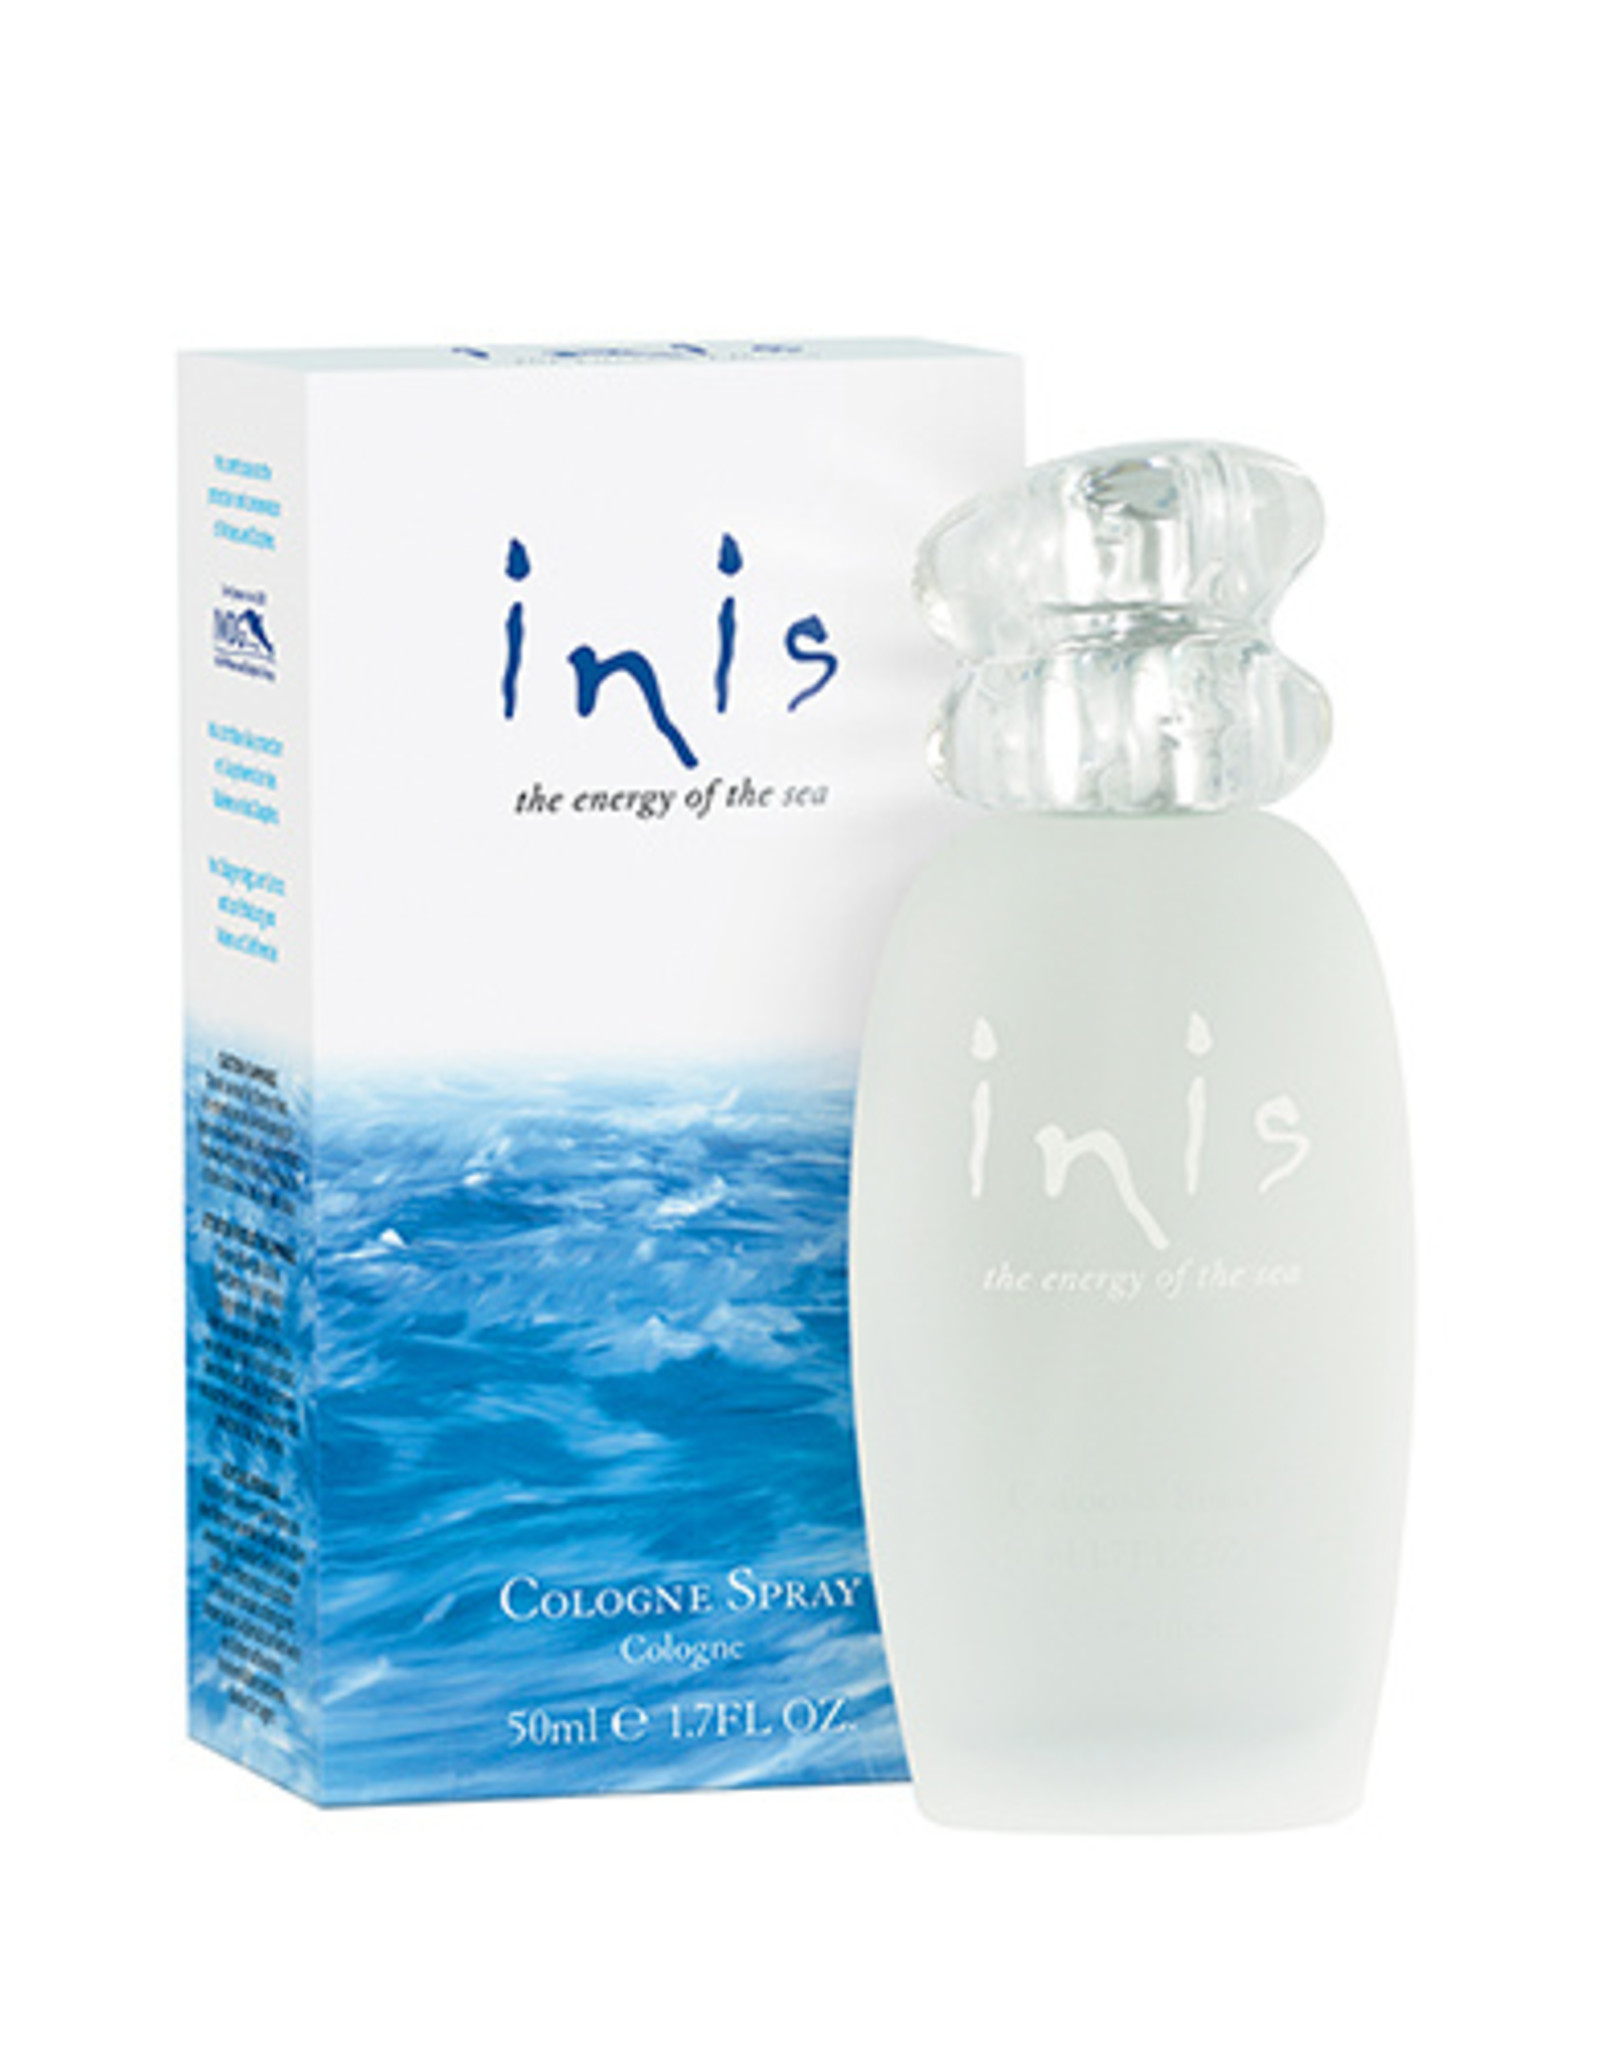 Inis EOTS Cologne Spray 1.7 Oz.